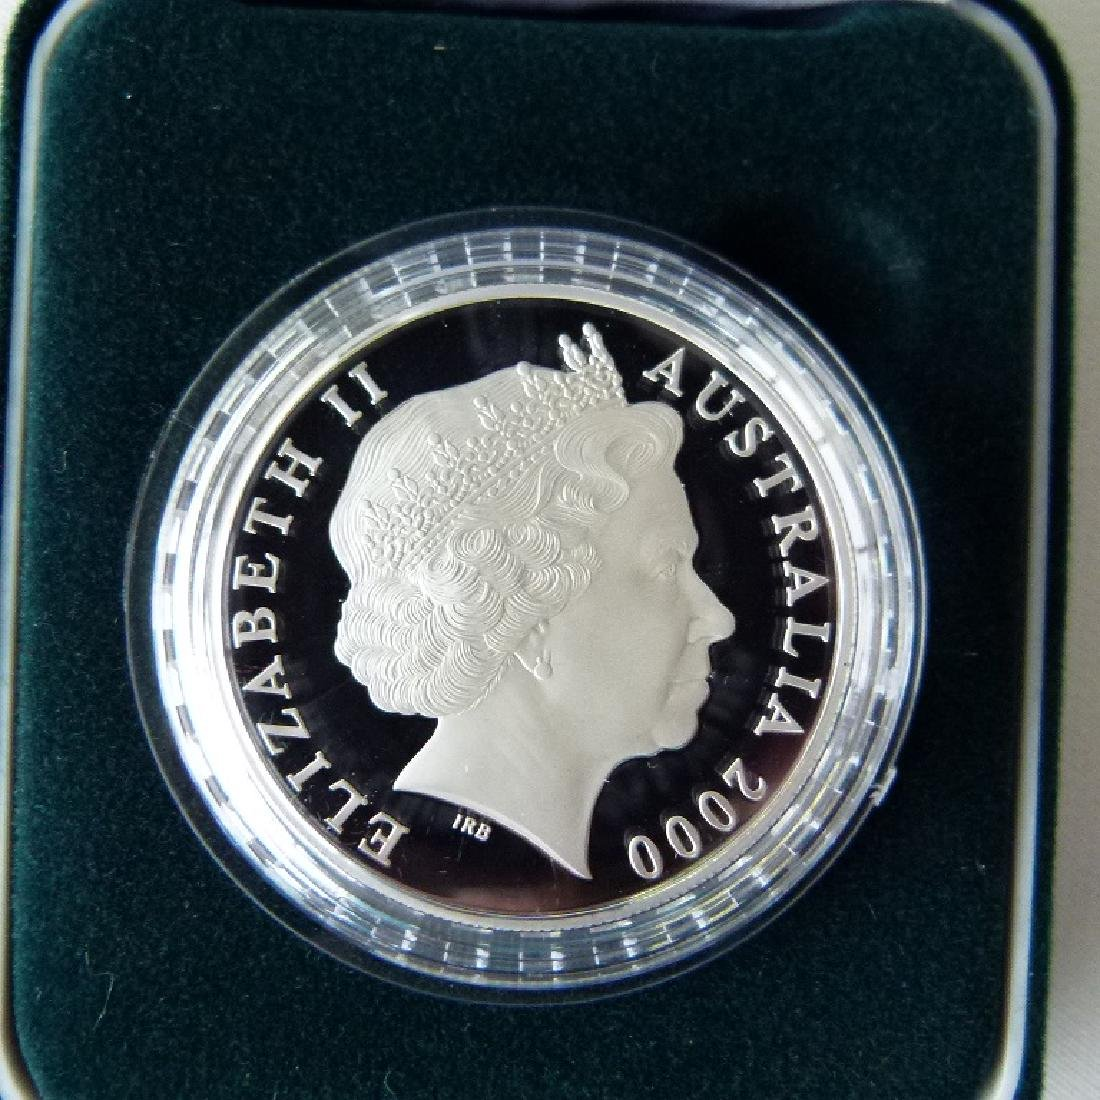 6 COMMEMORATIVE COINS INCL. CHINESE LUNAR COIN - 4